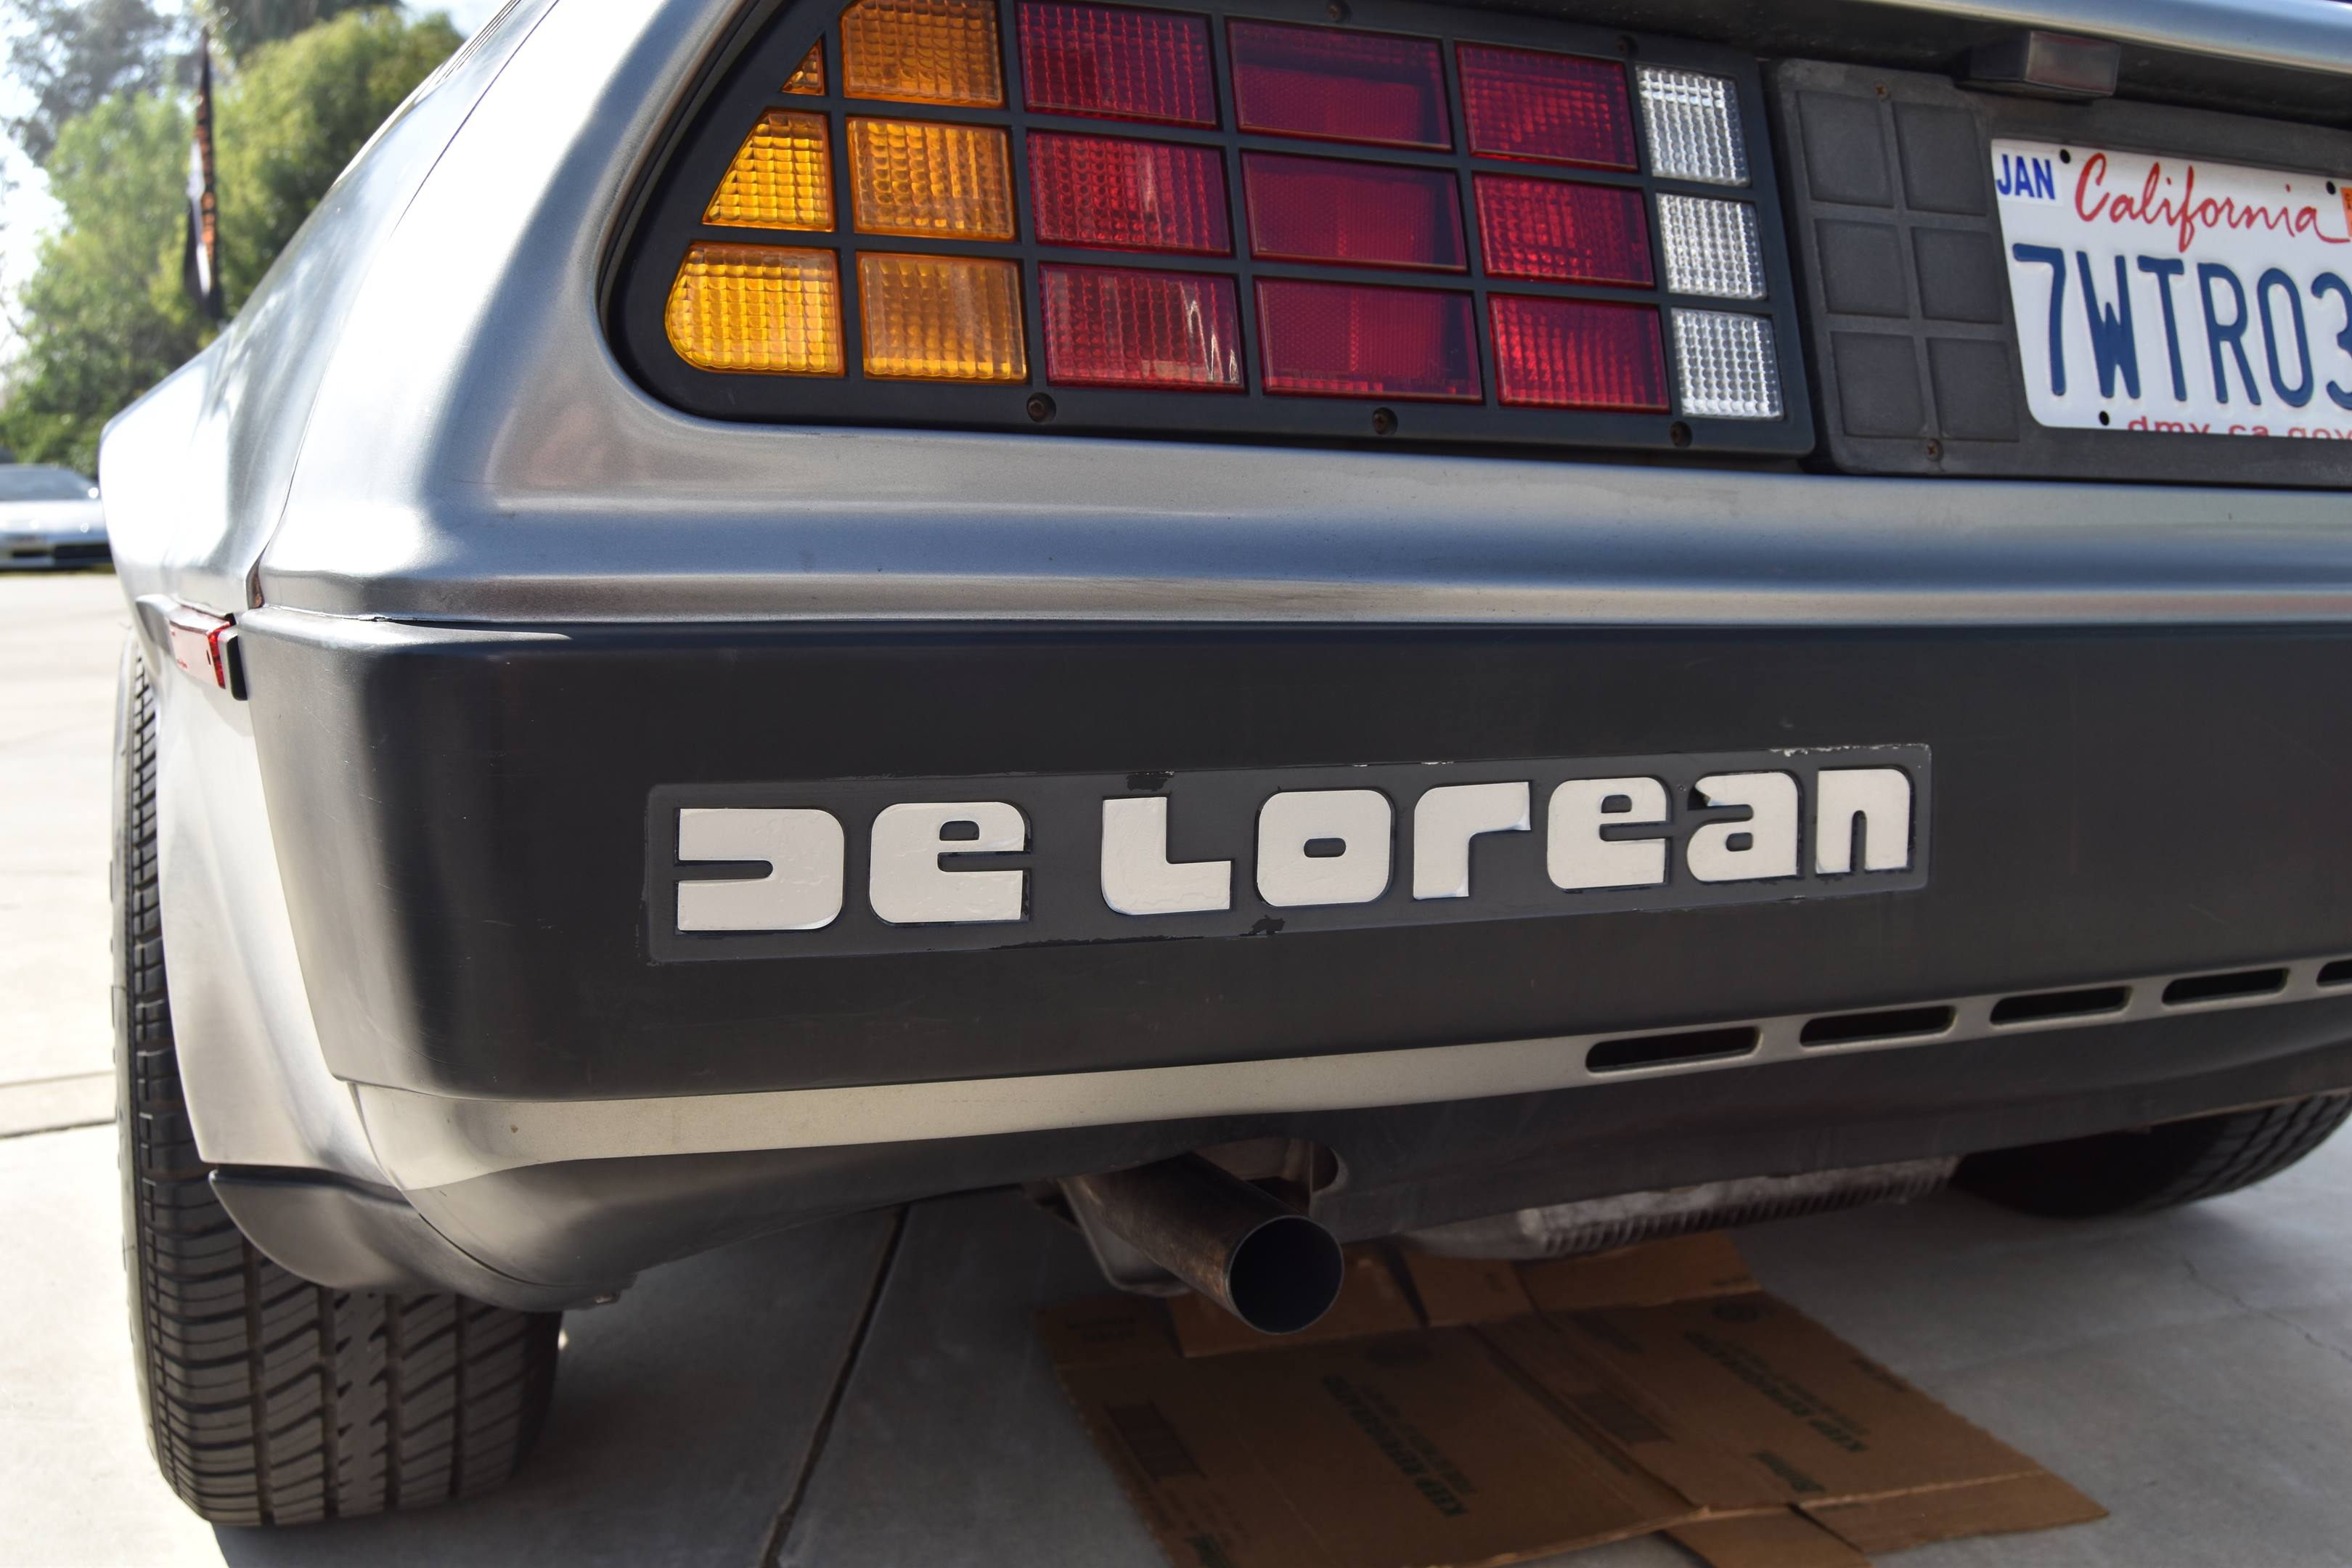 DeLorean DMC-12 rear badge